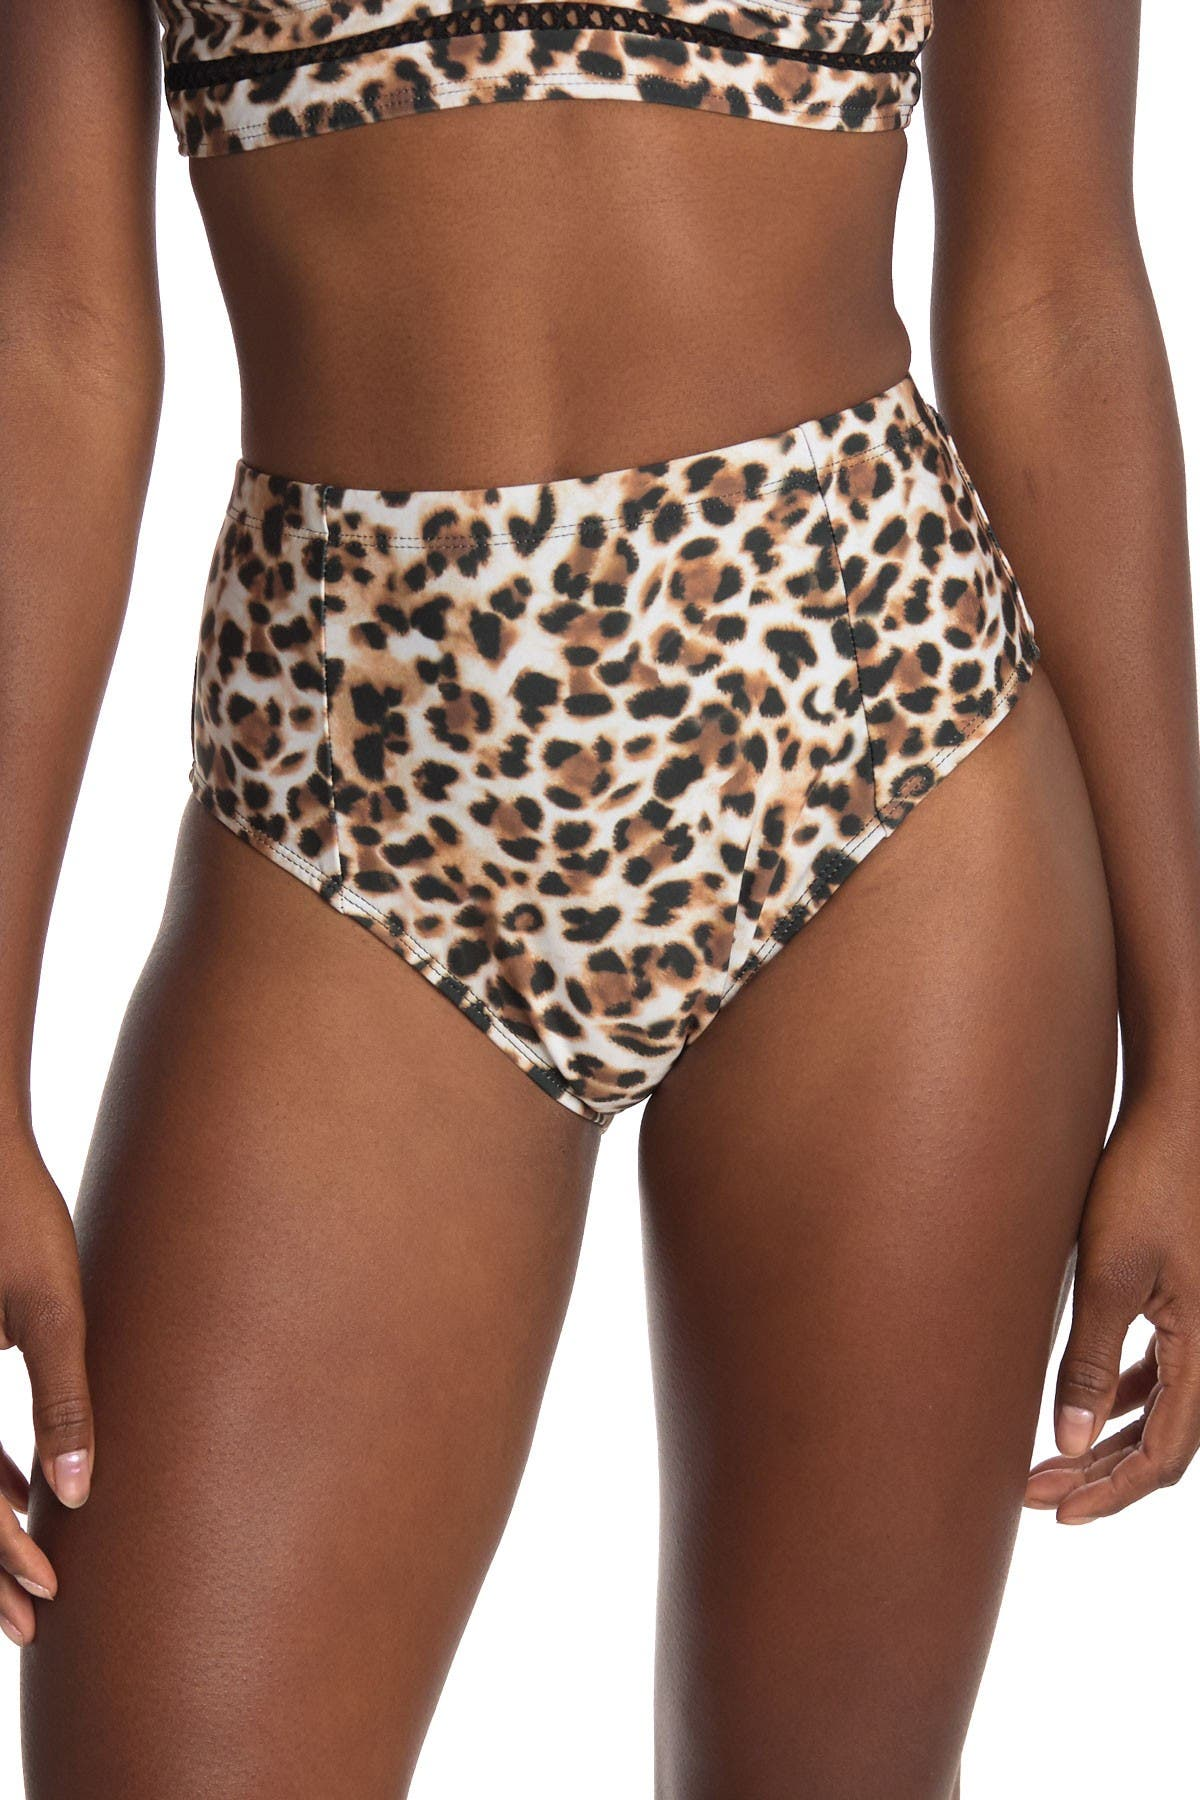 Image of Athena Purrfect High Waist Swim Pants